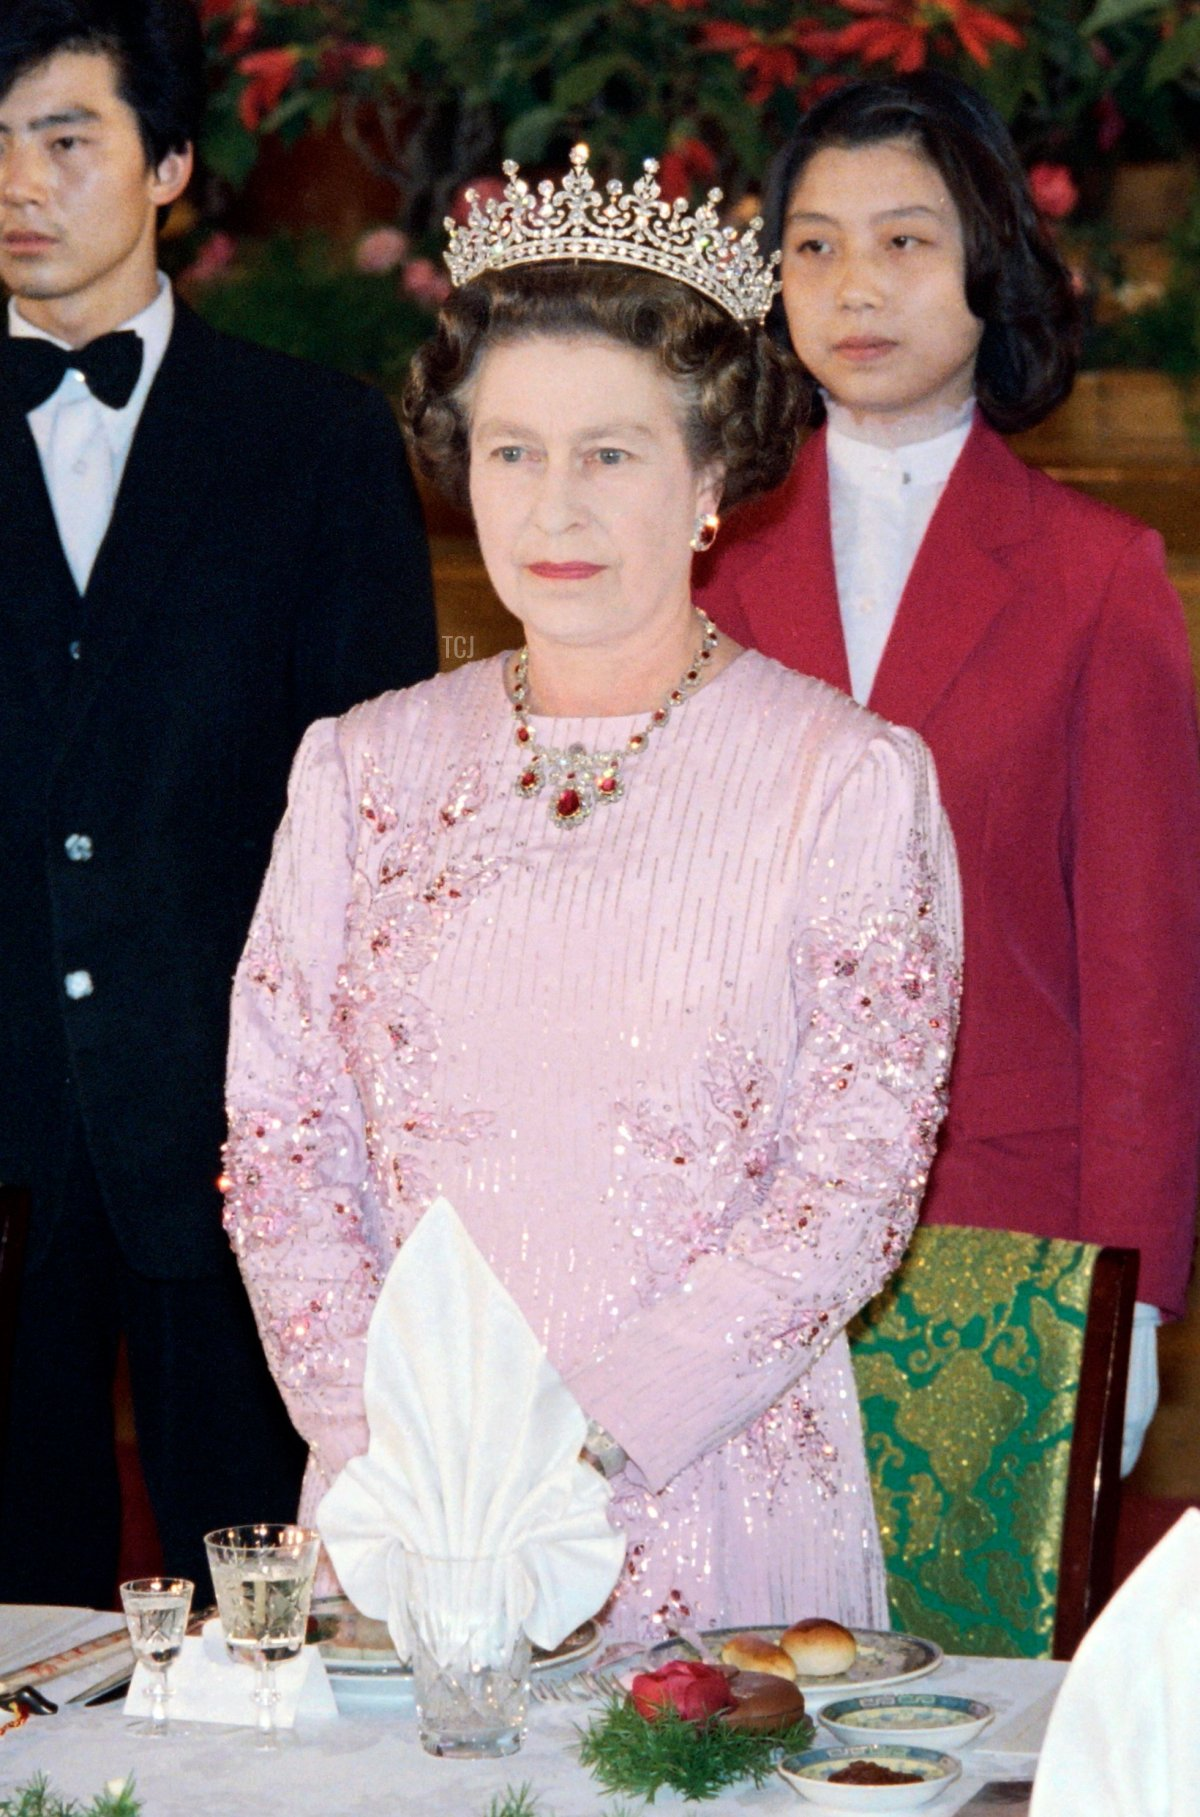 Britain's Queen Elizabeth II (C) attend a banquet with President of the People's Republic of China Li Xiannian (R) and Premier of the People's Republic of China Zhao Ziyang (L) at the Great Hall of the People in Beijing on October 13, 1986